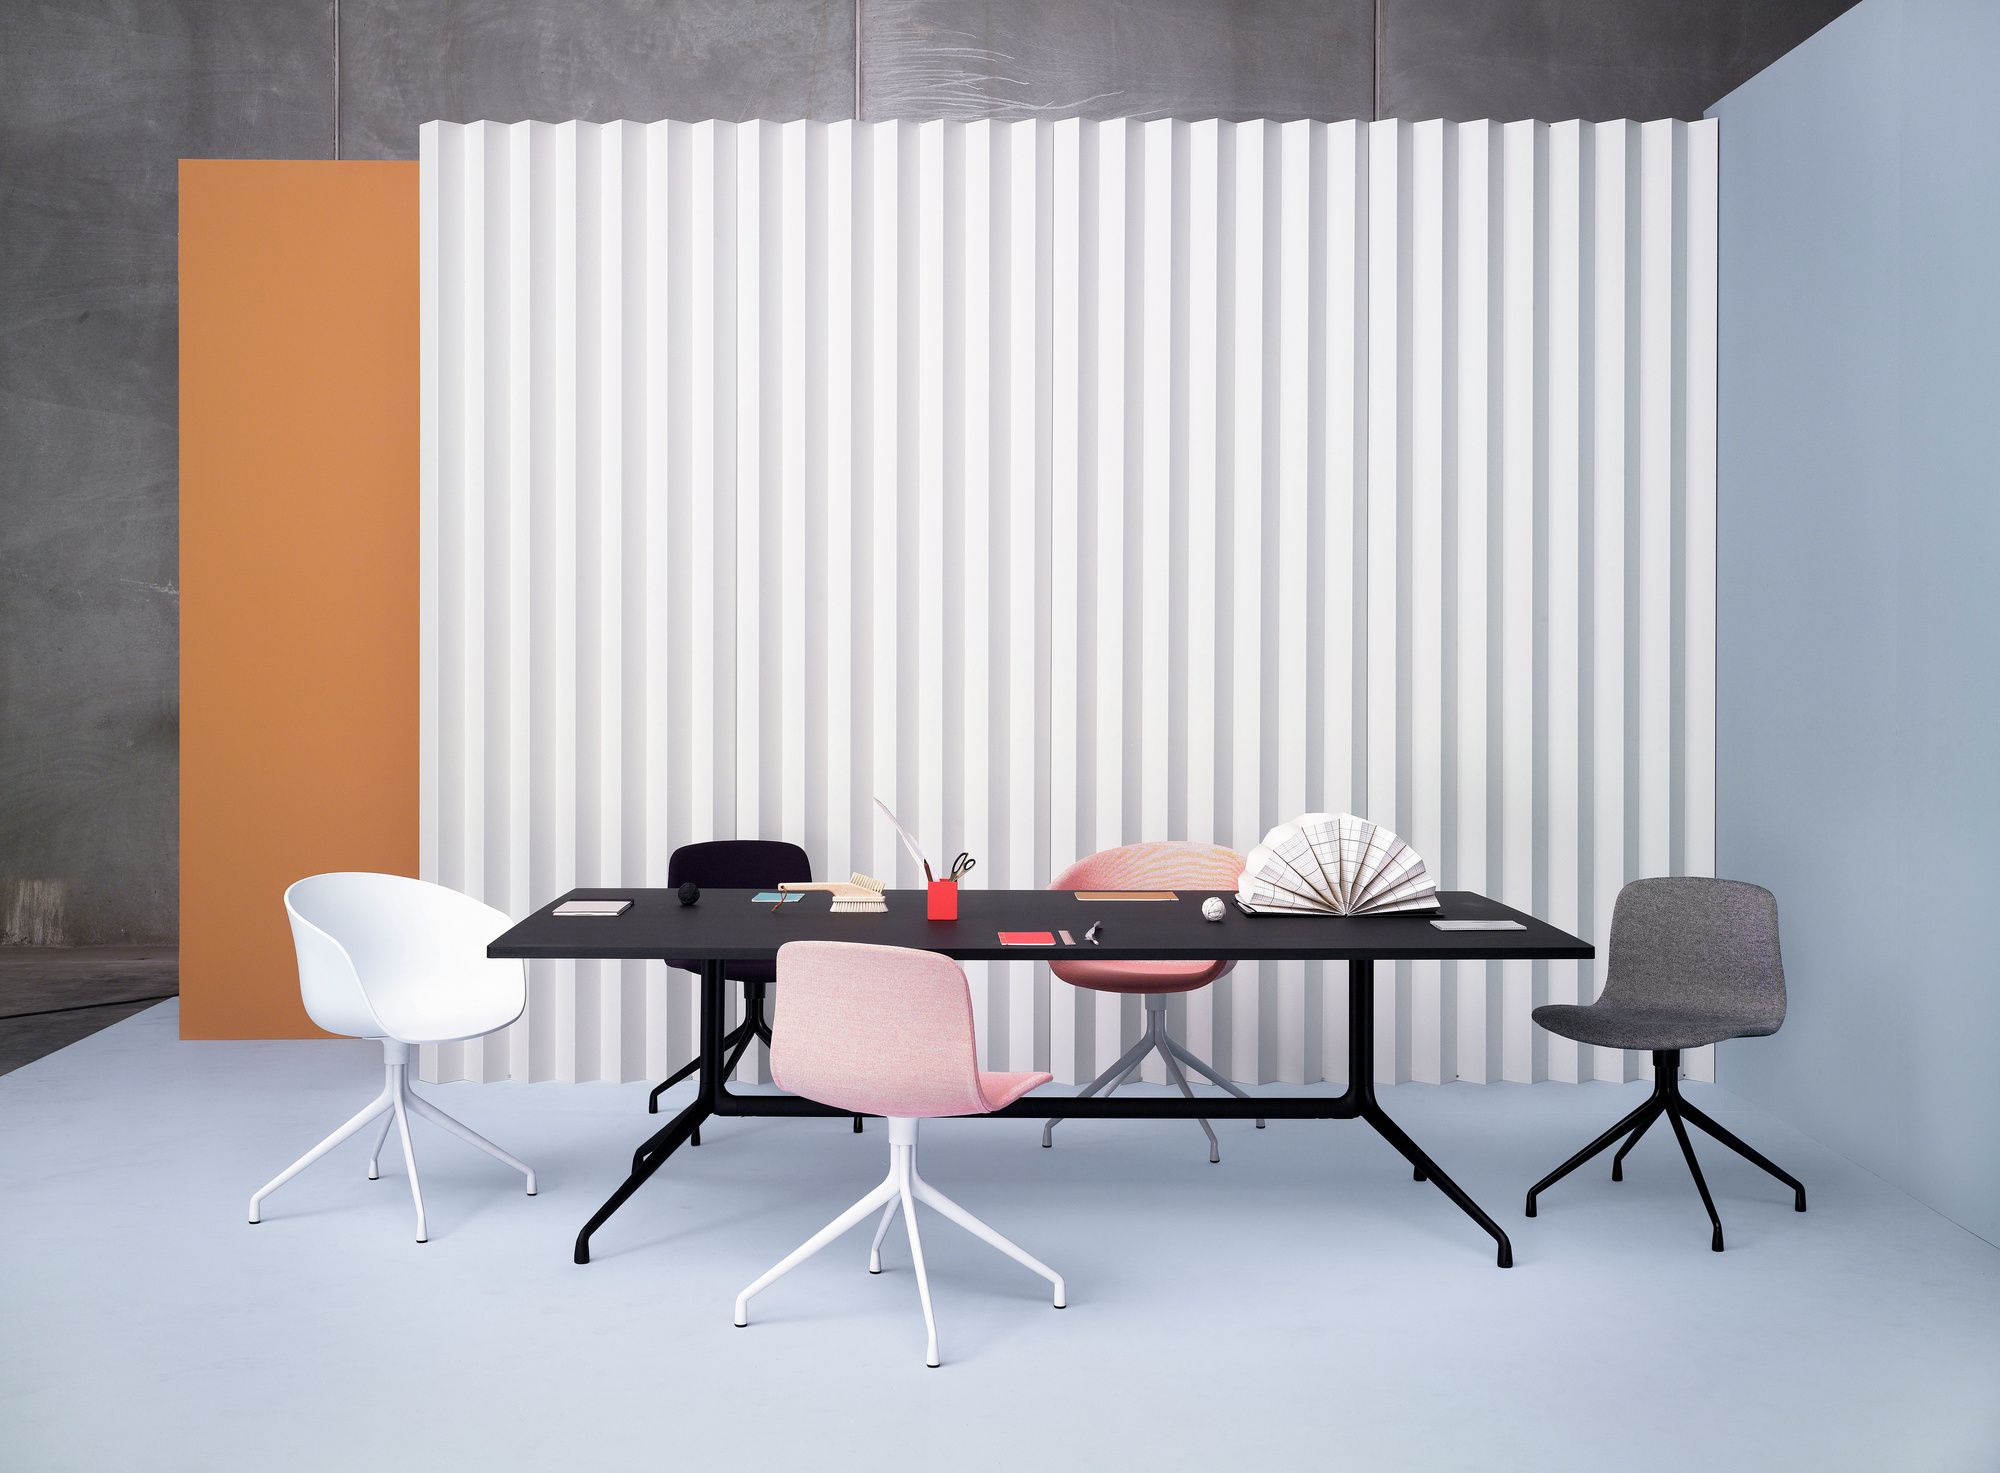 office chair conference dining scandinavian design aac22. Scandinavia Design · About A Chair Giratorio // HAY Dining ChairsDesk Office Conference Scandinavian Aac22